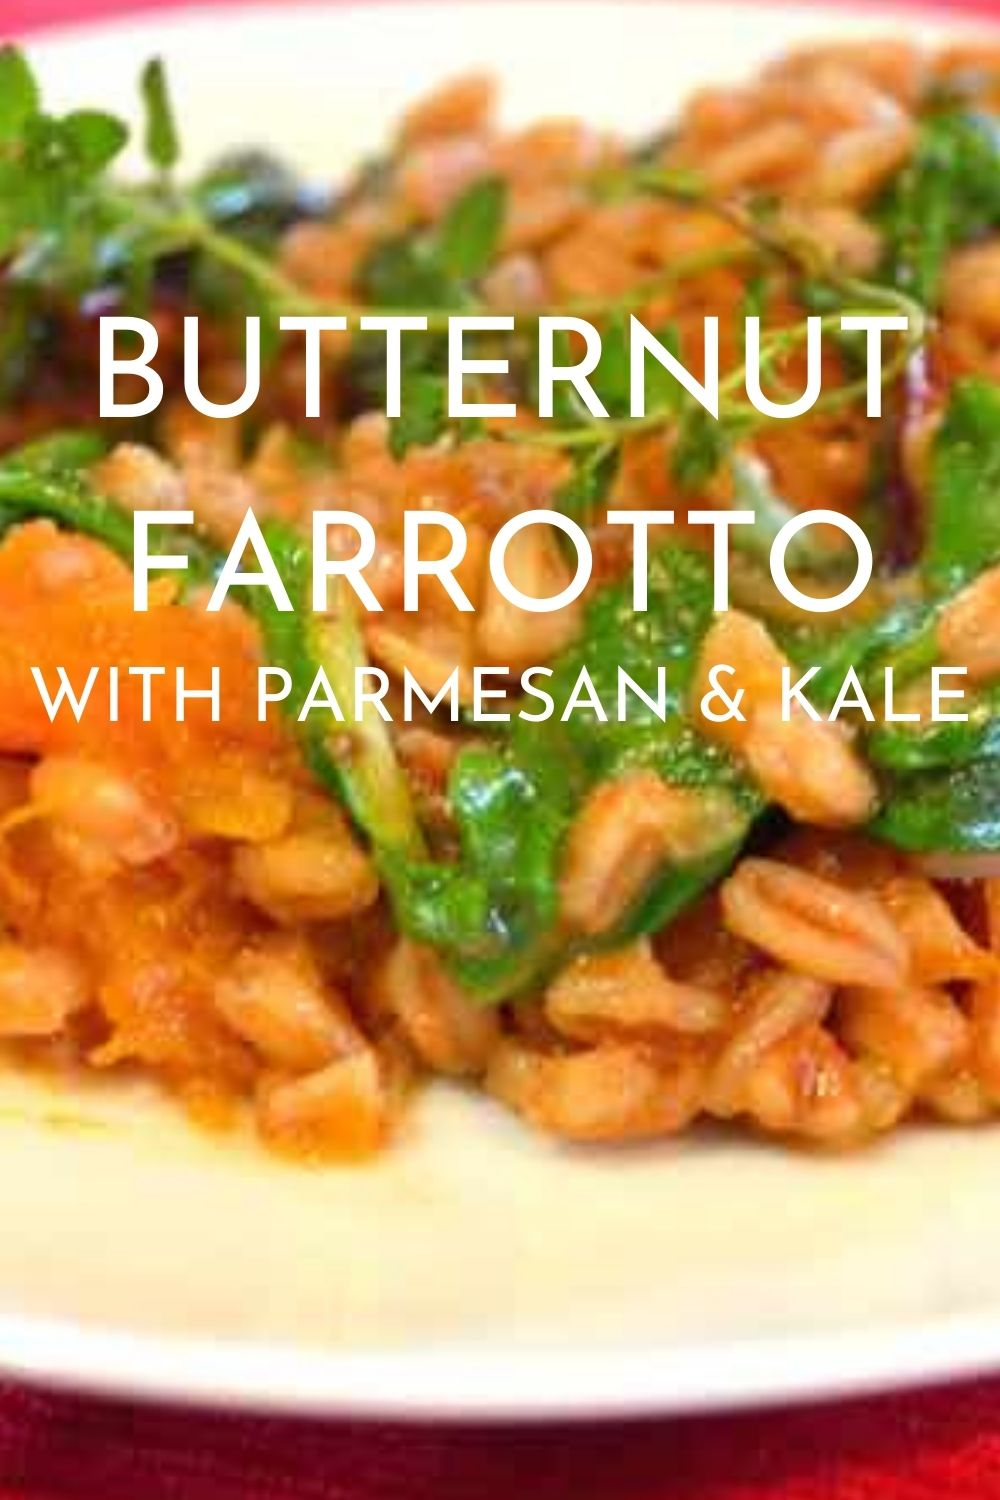 Butternut Farrotto with parmesan and kale graphic